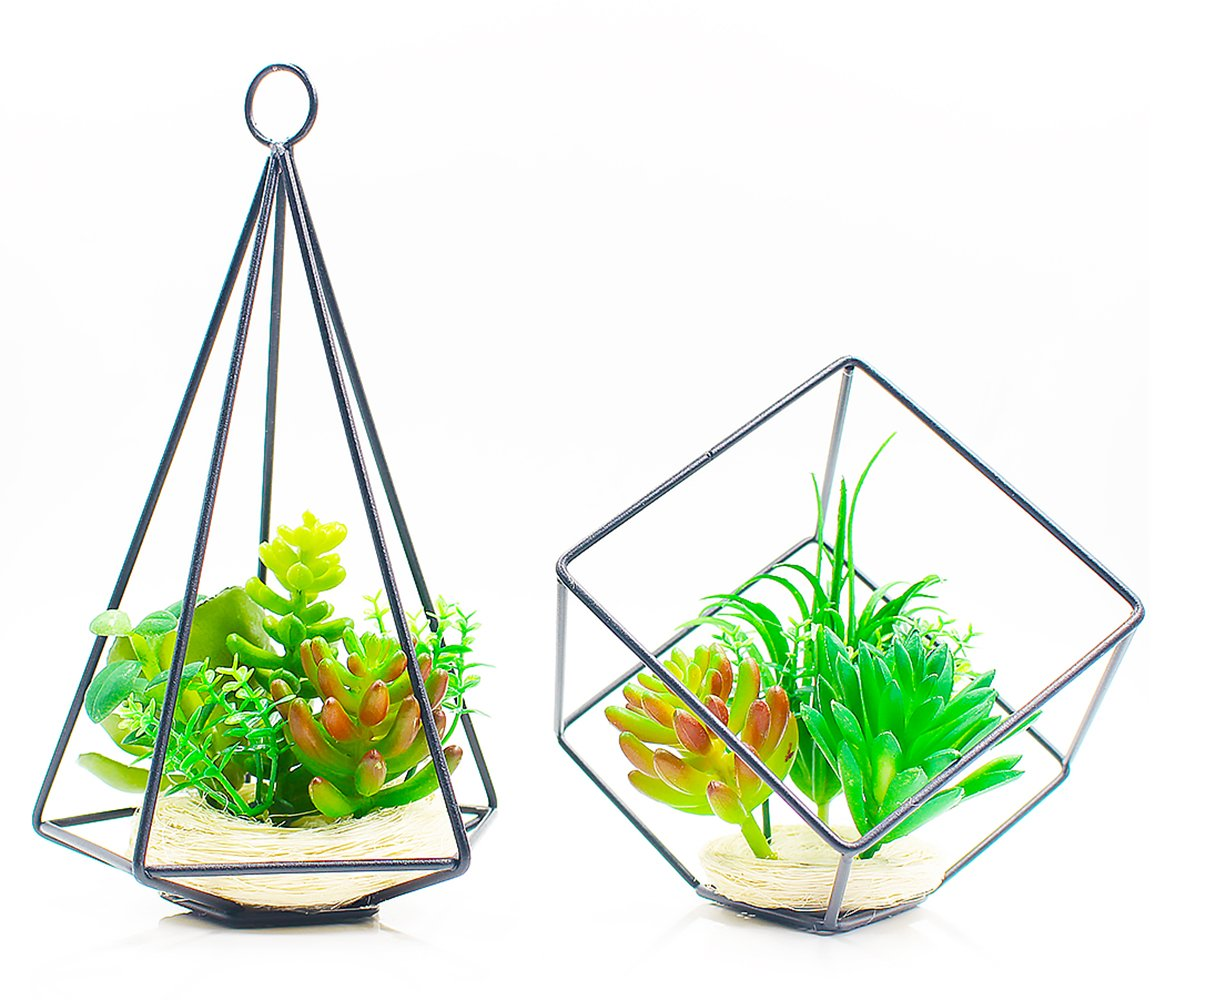 ZAZALUM Artificial Succulent Potted Plants, Set of 2 Fake Green Plant in Geometric Open Cube and pyramid metal Frame for Home Desktop Decor SHENZHEN XINBAOKANG CO LTD